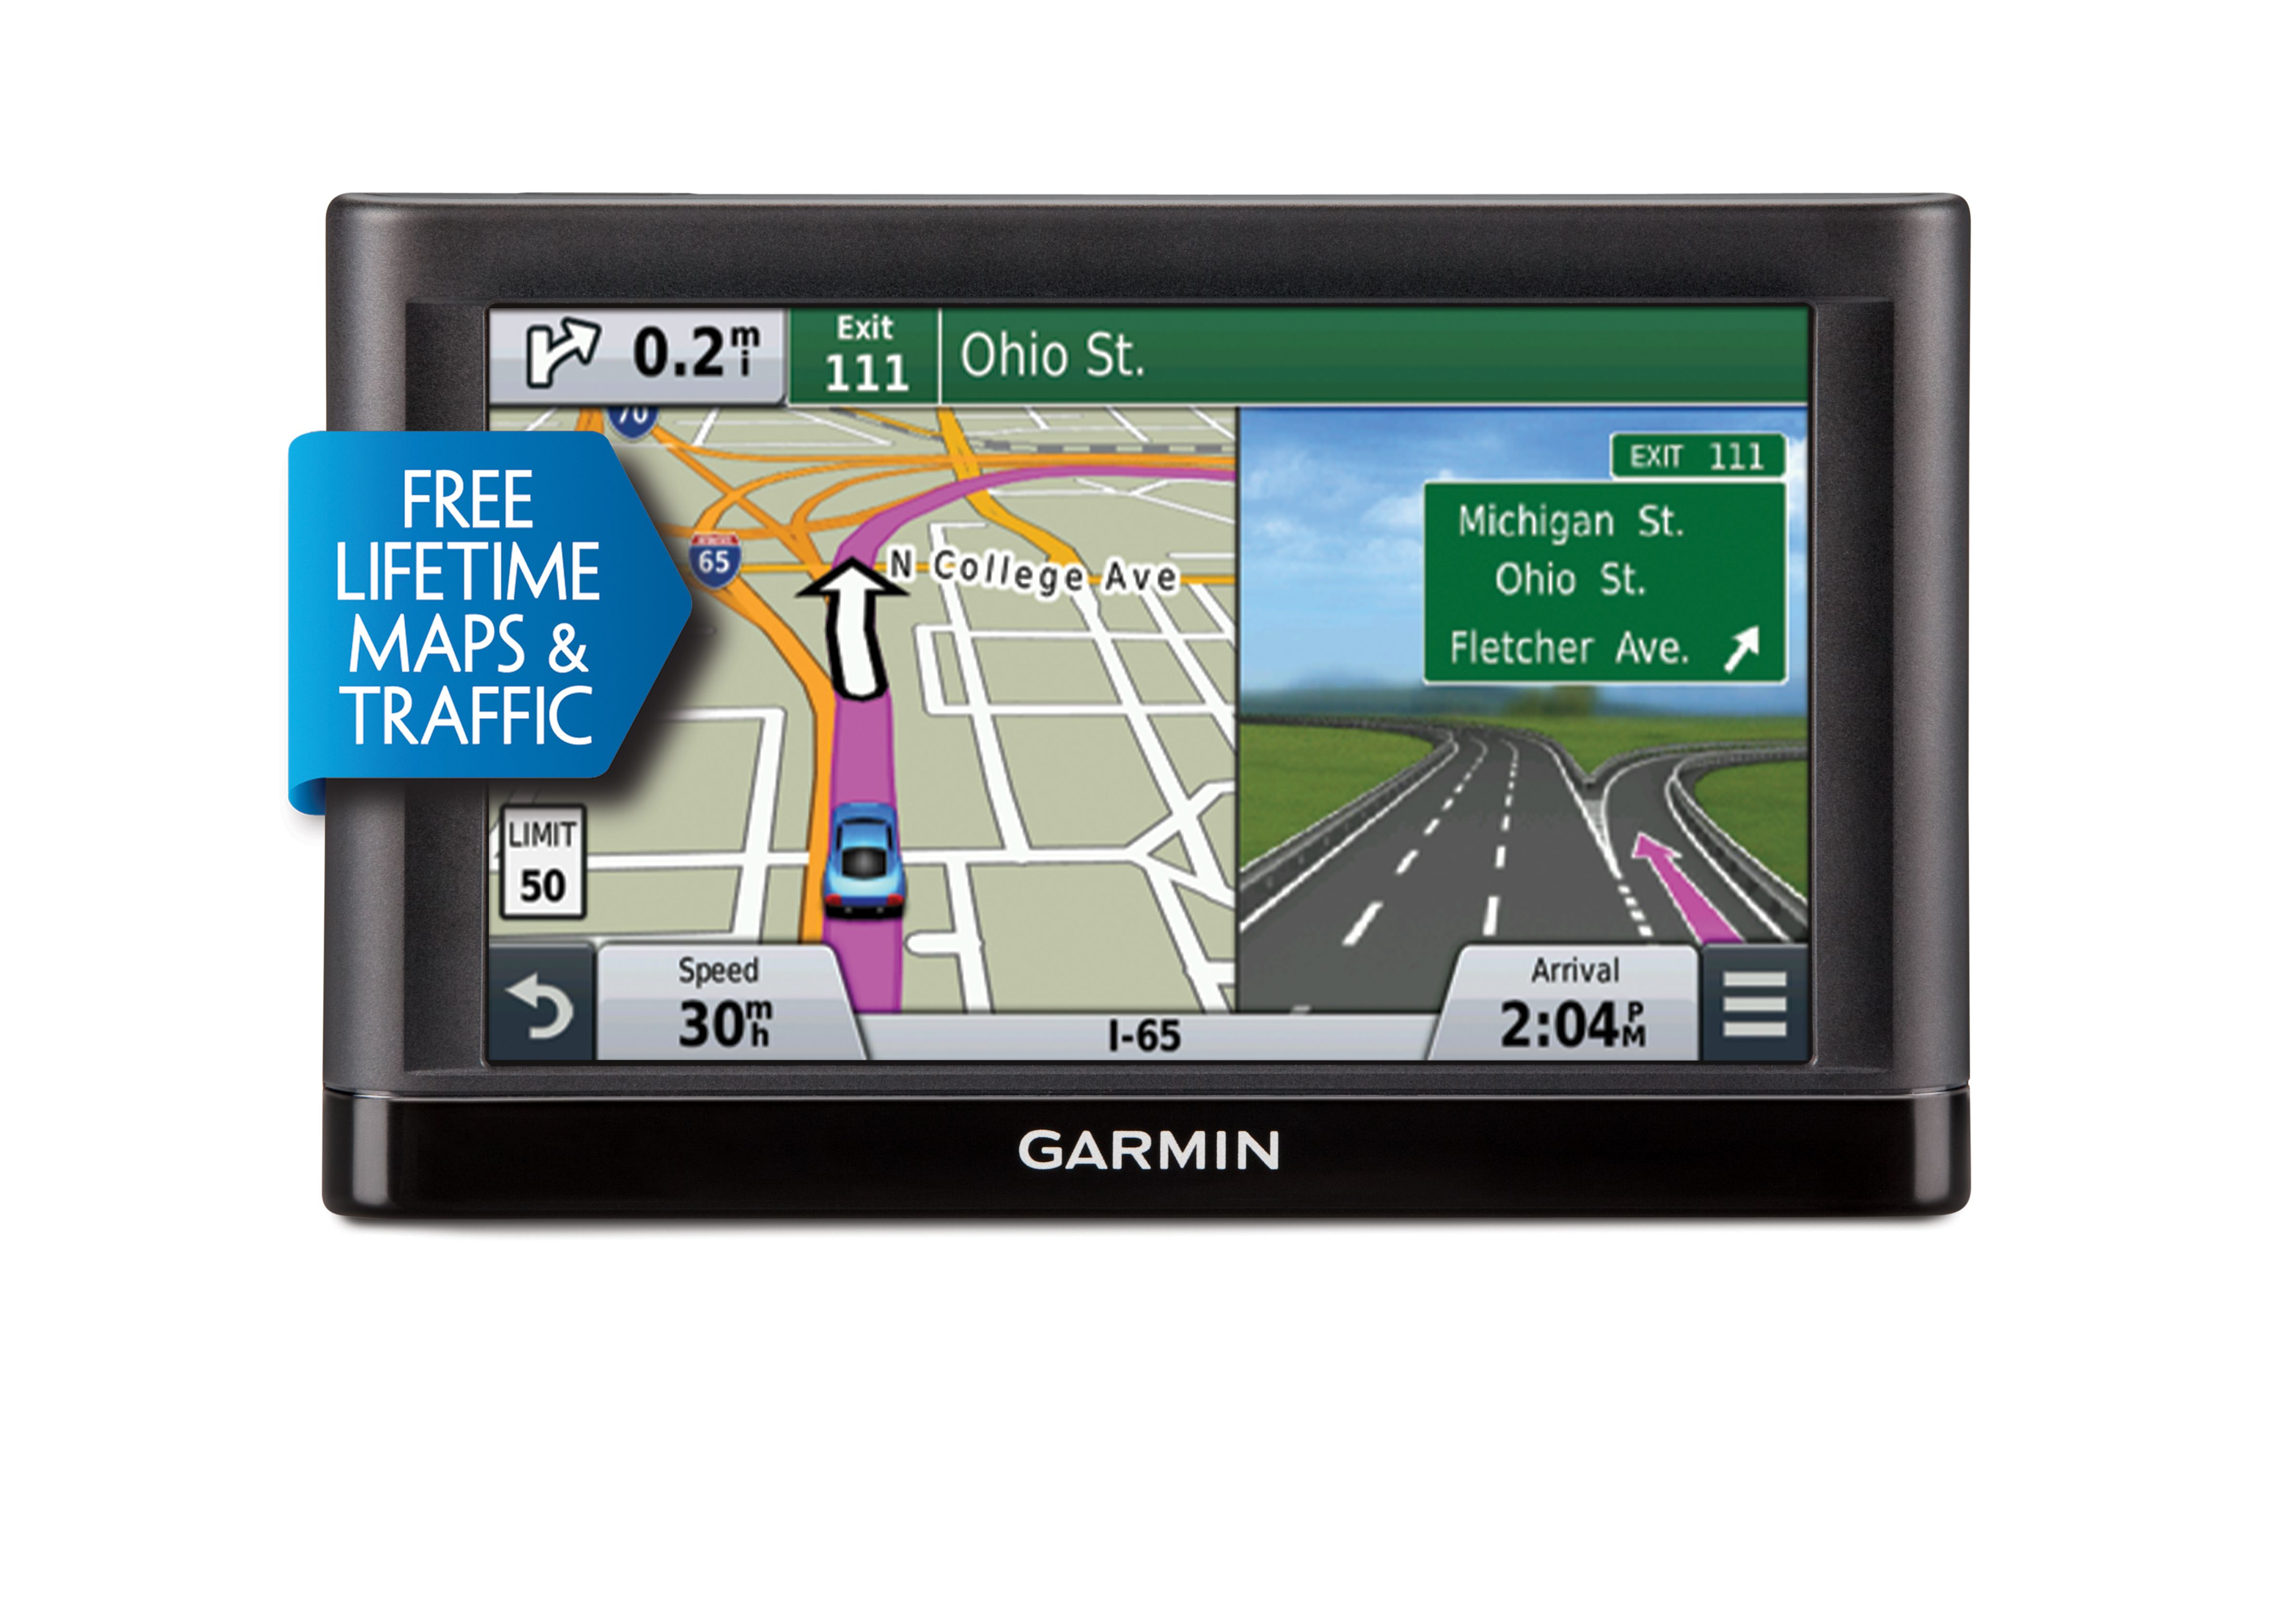 Garmin Nuvi With Traffic And Lifetime Maps on 7 garmin nuvi maps, garmin 265wt with lifetime maps, garmin nuvi with bluetooth, discount garmin lifetime maps, nuvi gps maps, garmin gps lifetime maps, garmin nuvi lifetime maps that has, navigation systems with lifetime maps, garmin nuvi 50 lifetime maps, garmin nuvi 50lm lifetime maps, garmin lifetime map upgrade, 49 states garmin maps, garmin with voice activation, garmin 7 gps with bluetooth, garmin lifetime updater,